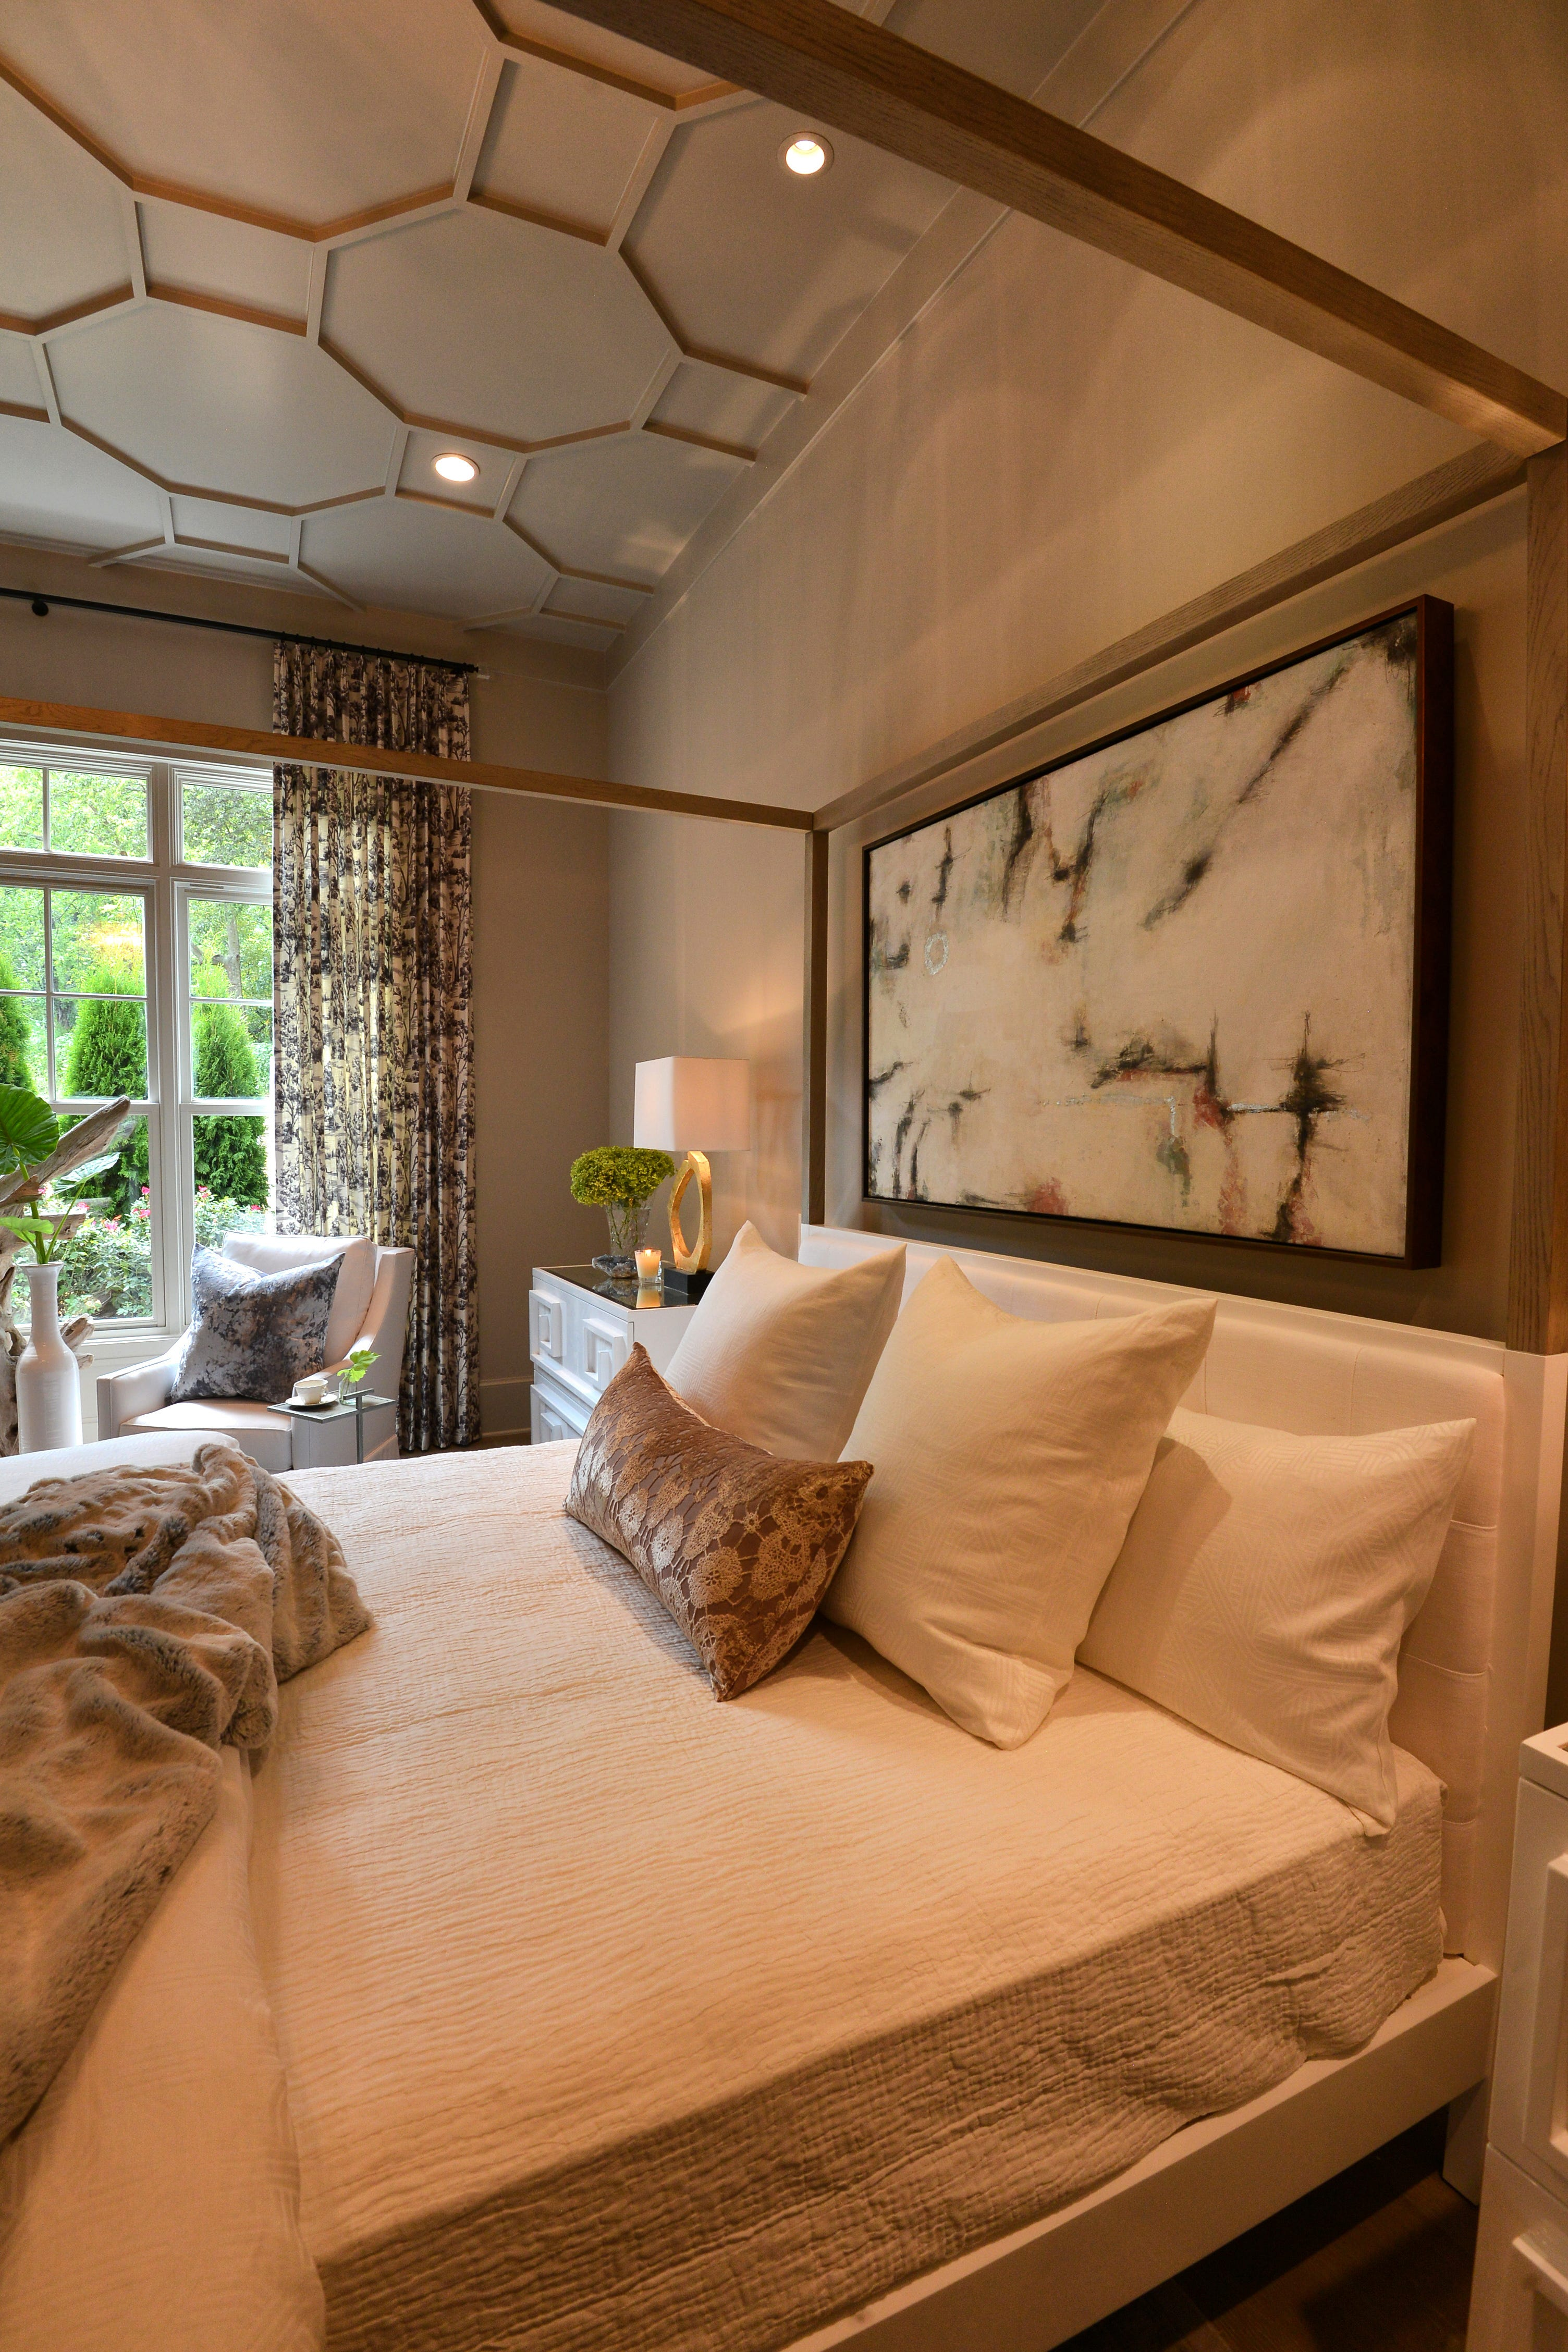 Interior design takeaways from the Parade of Homes in Brentwood